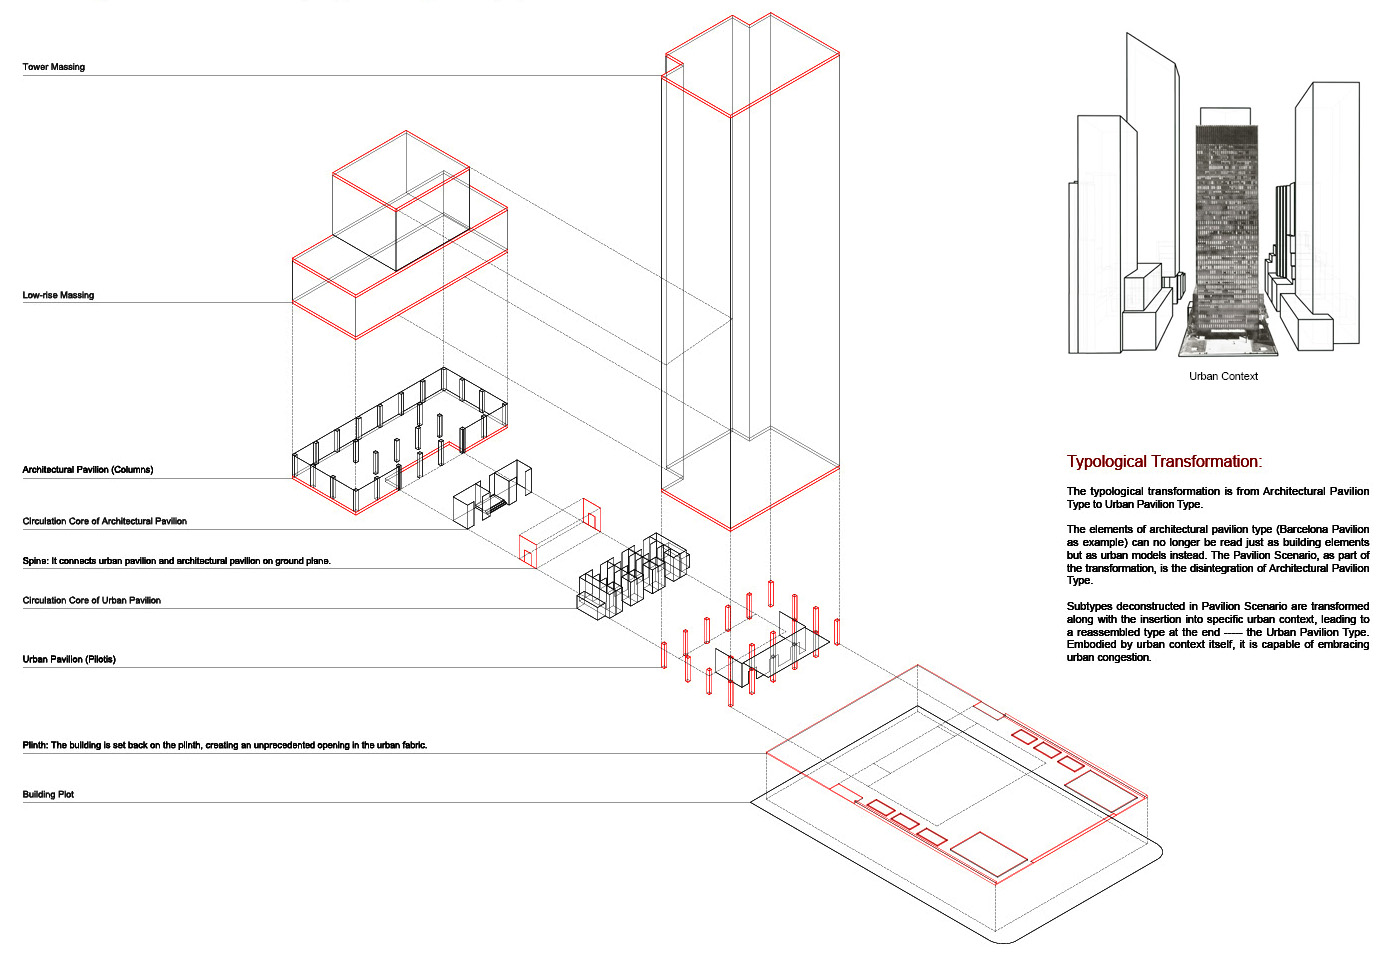 5_Urban Pavilion Type-Reassembled Elements(Seagram Building as example)